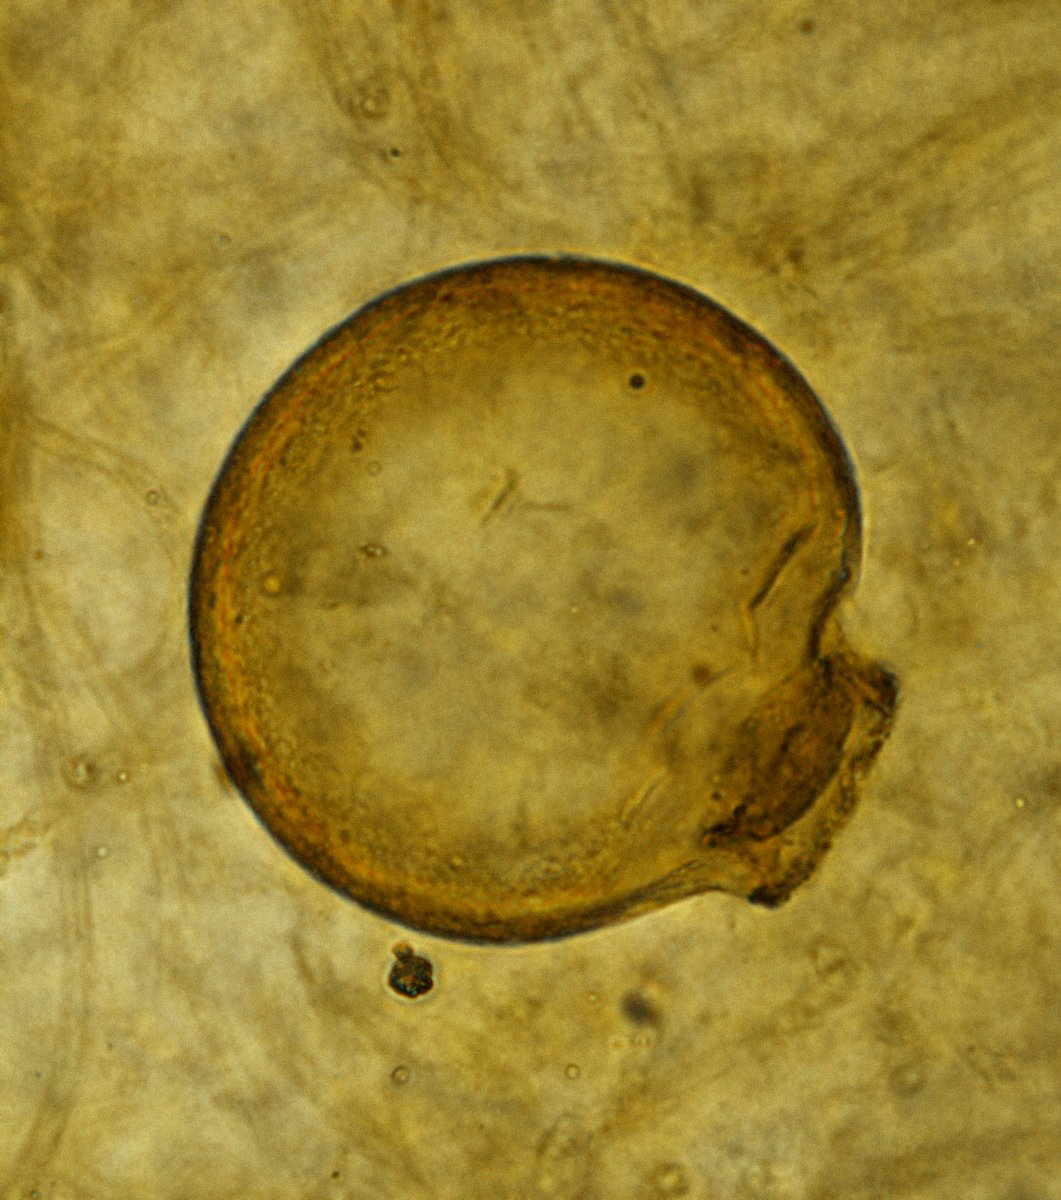 It&#39;s exciting to have a new species here @NHM_London for #FossilFriday - a 407-million year old testate amoebae described from our Rhynie Chert collections, demonstrating the presence of phagotrophic protists in early terrestrial ecosystems - new paper:  https://www. cell.com/current-biolog y/pdf/S0960-9822(18)31610-5.pdf &nbsp; … <br>http://pic.twitter.com/4ojizAdIgT